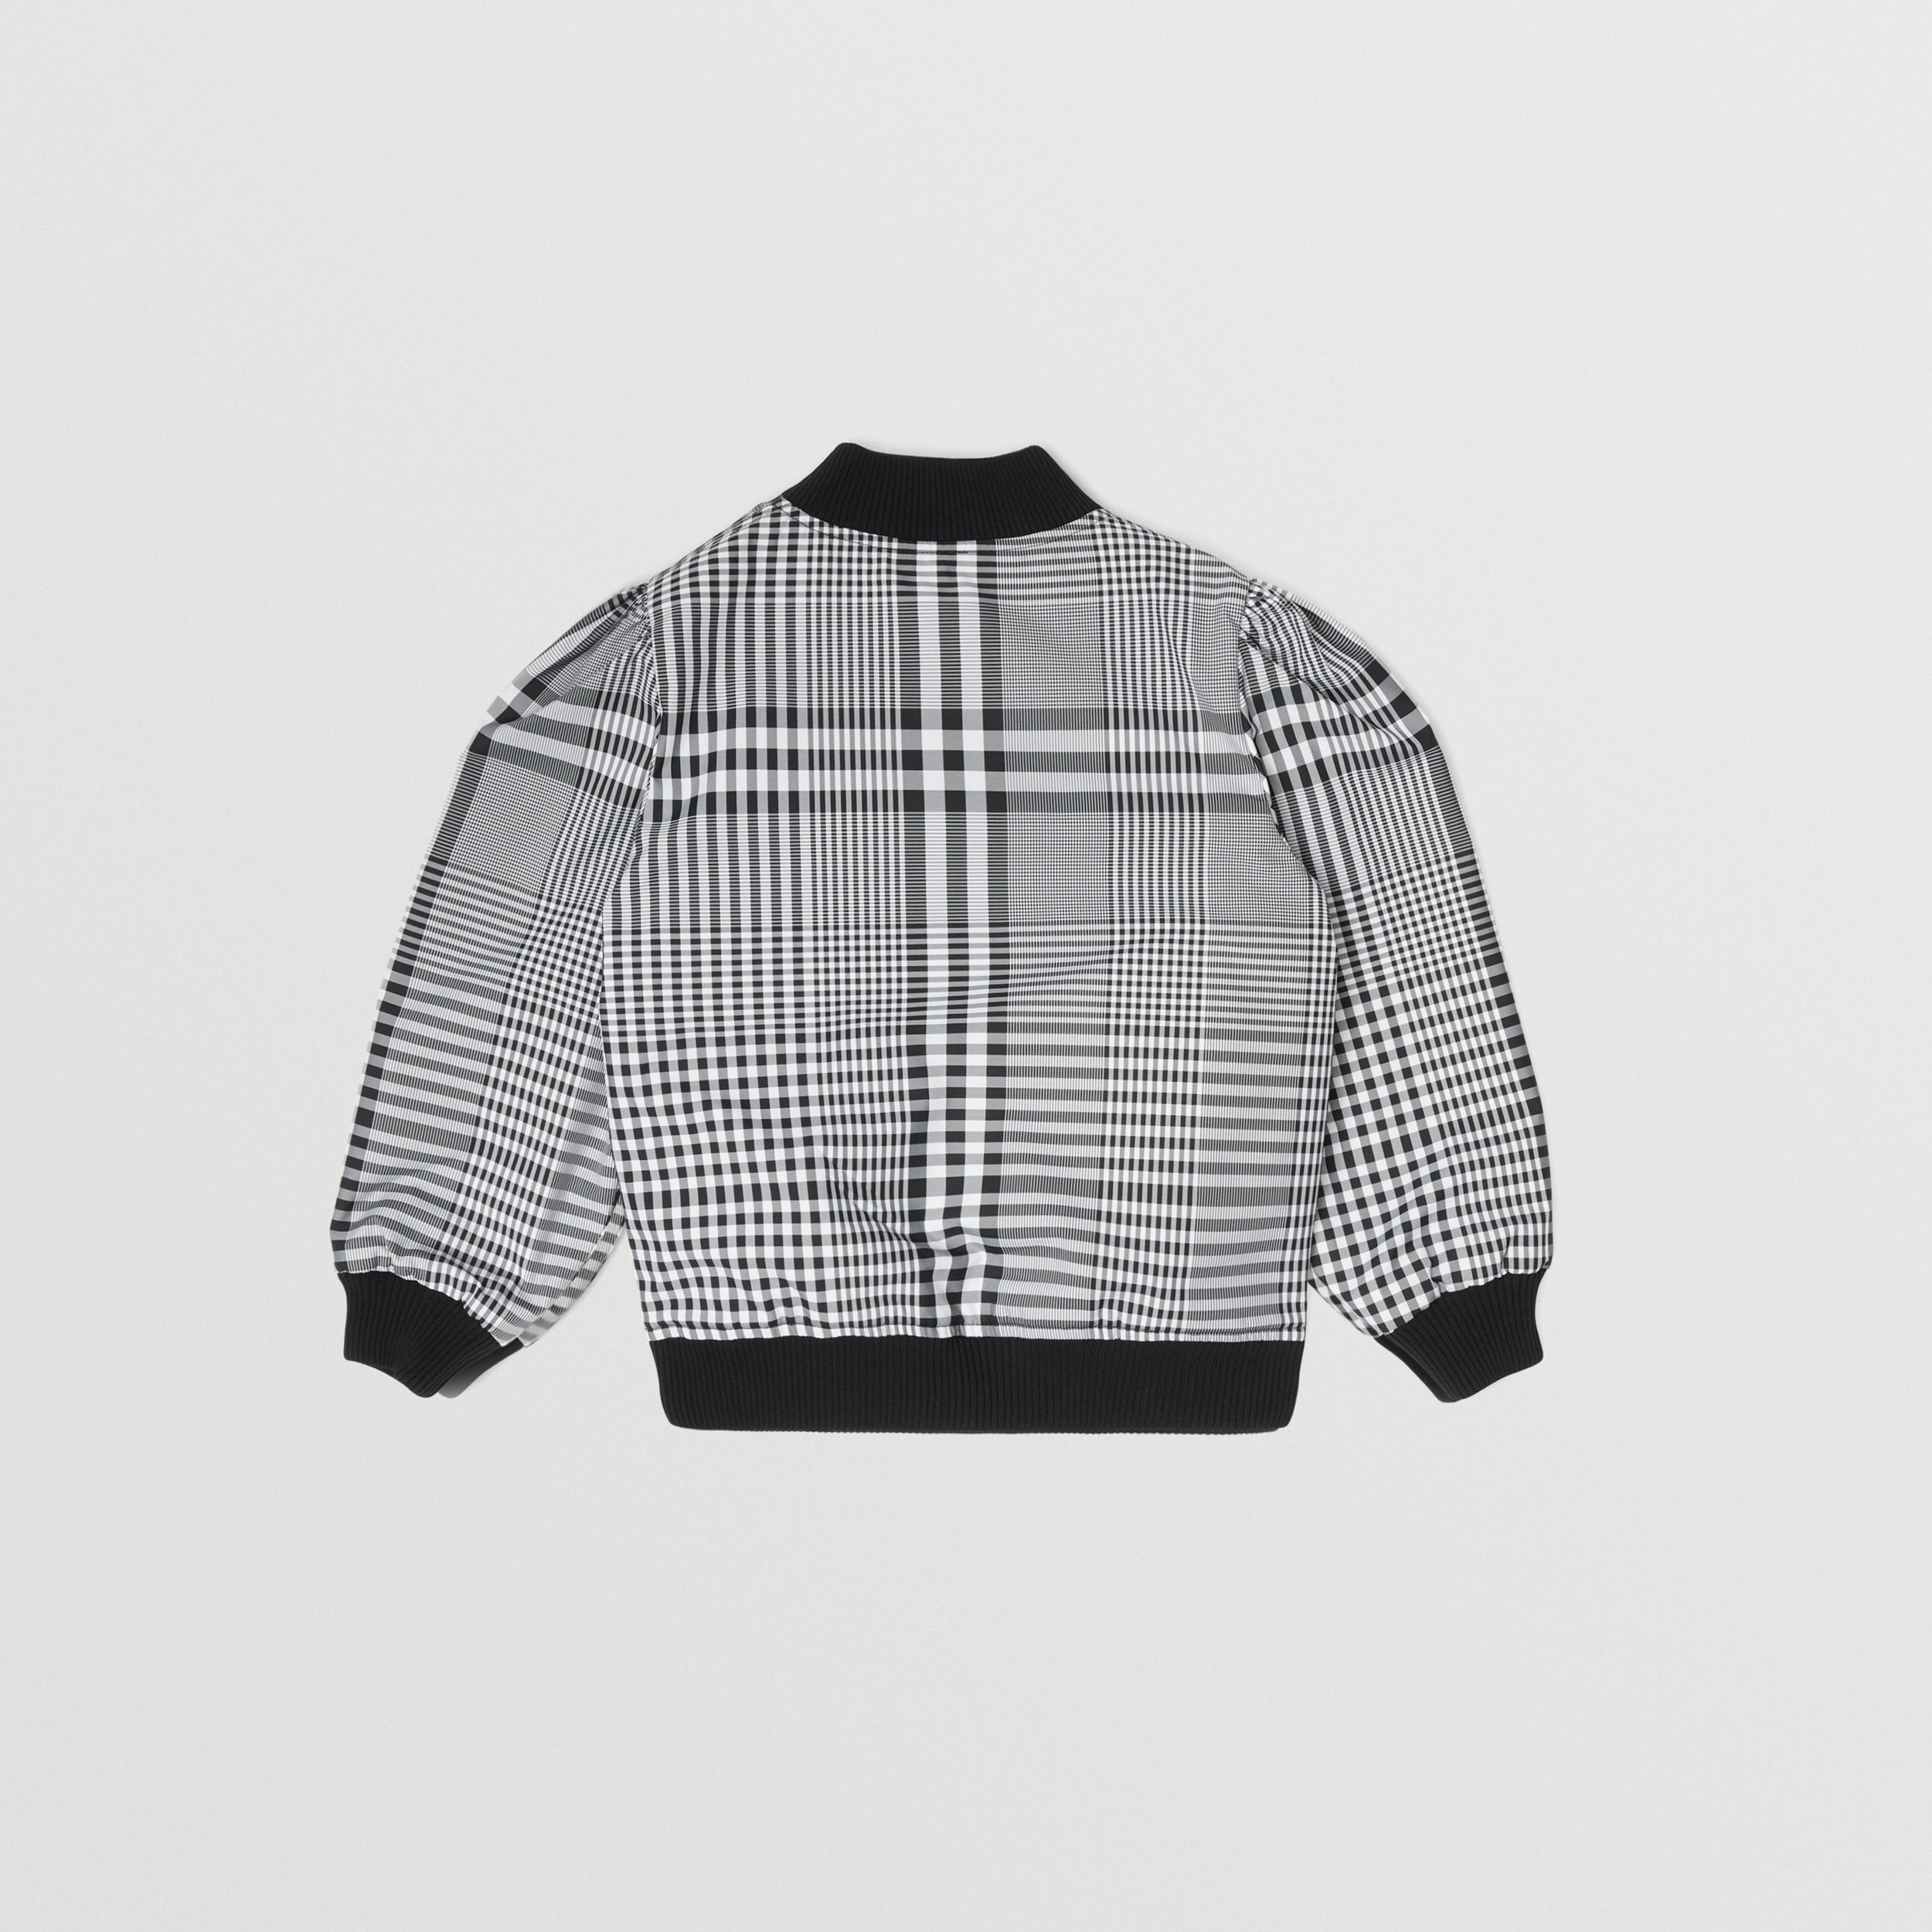 Logo Appliqué Reversible Check Bomber Jacket in Black | Burberry - 4